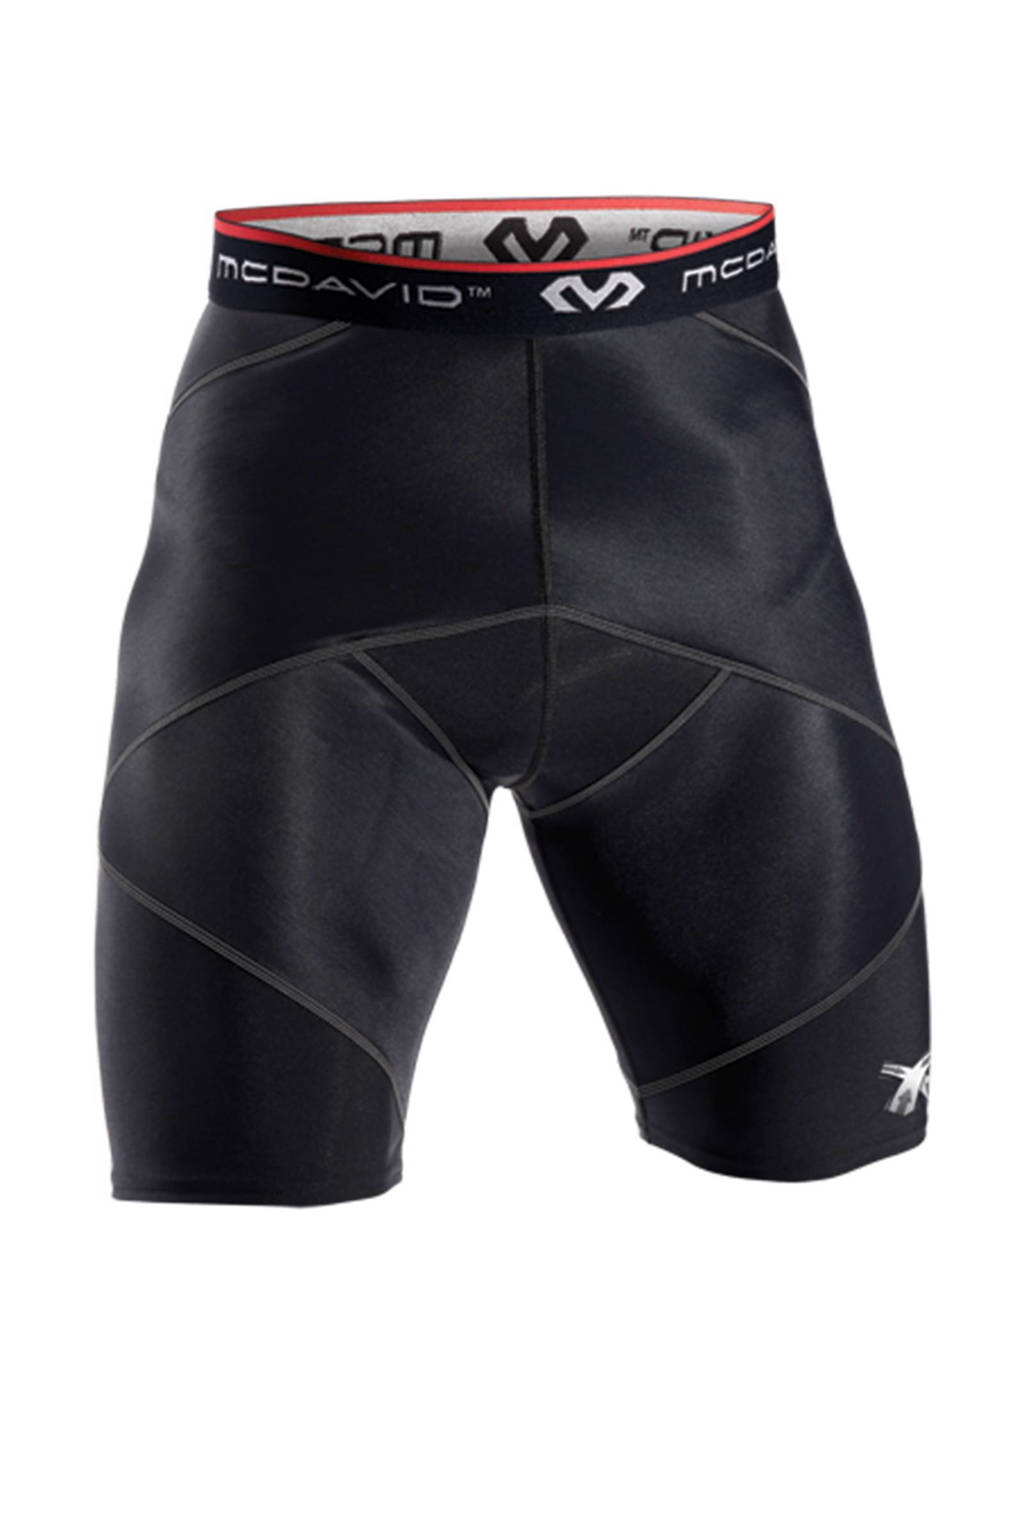 MC David compressie short, Zwart